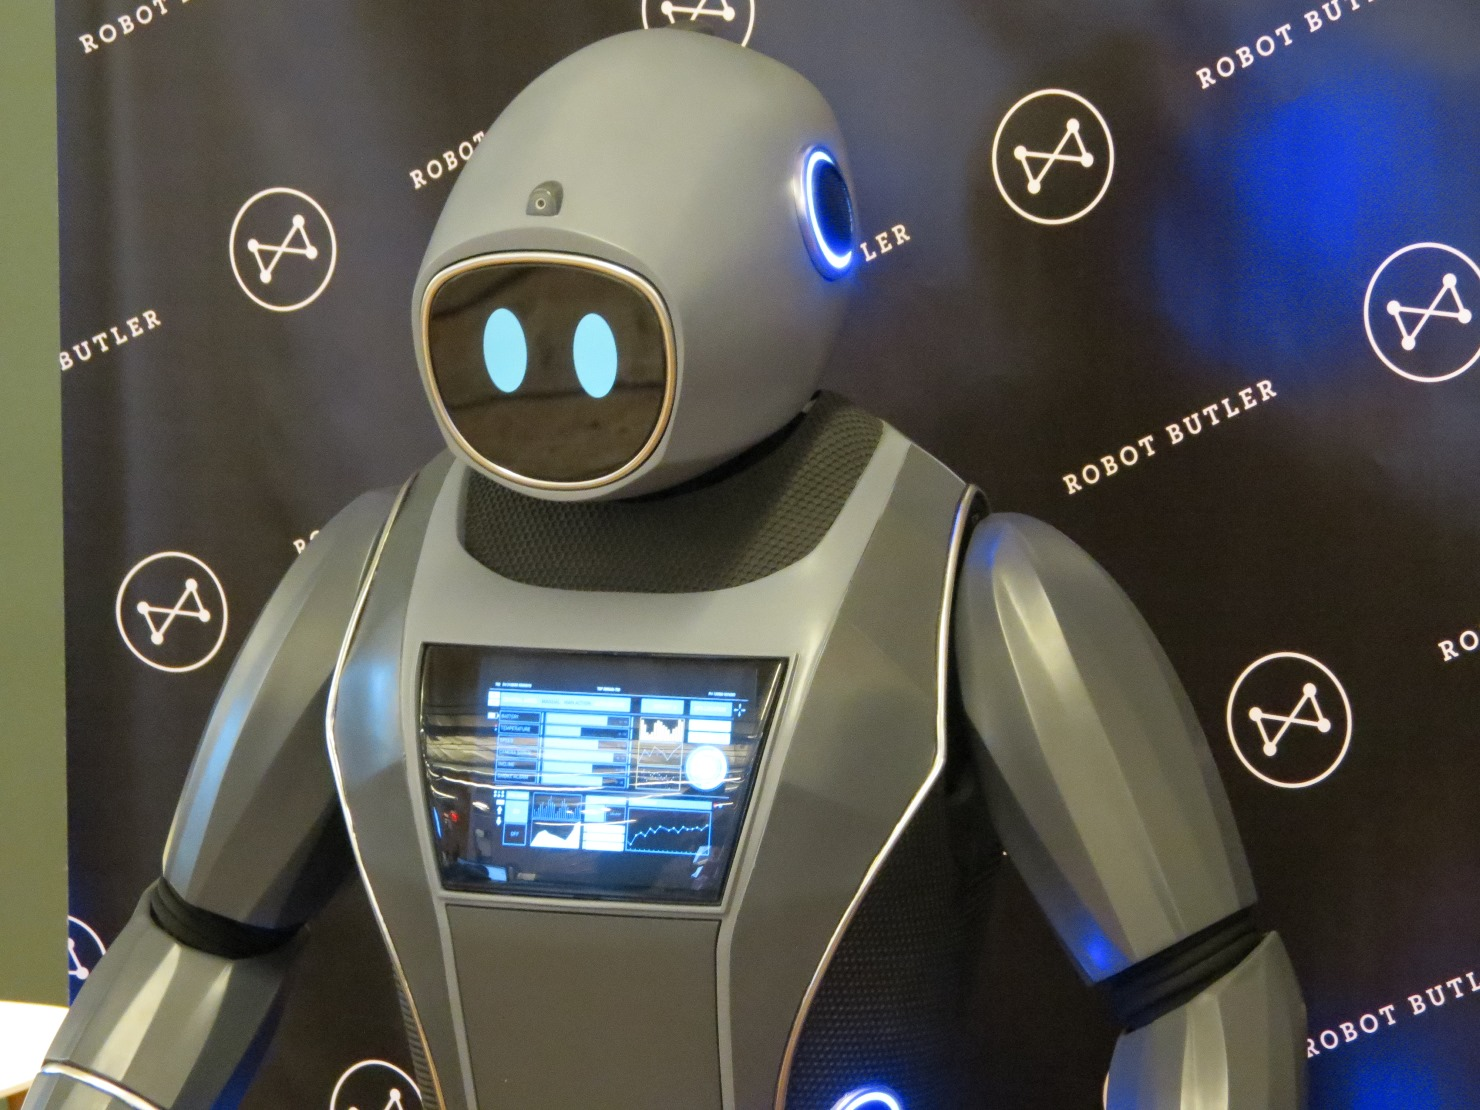 Quirky trotted out this robot butler last year to try and prove connected devices were less creepy. The public has yet to fall in love with either idea. (photo Joao-Pierre S. Ruth)